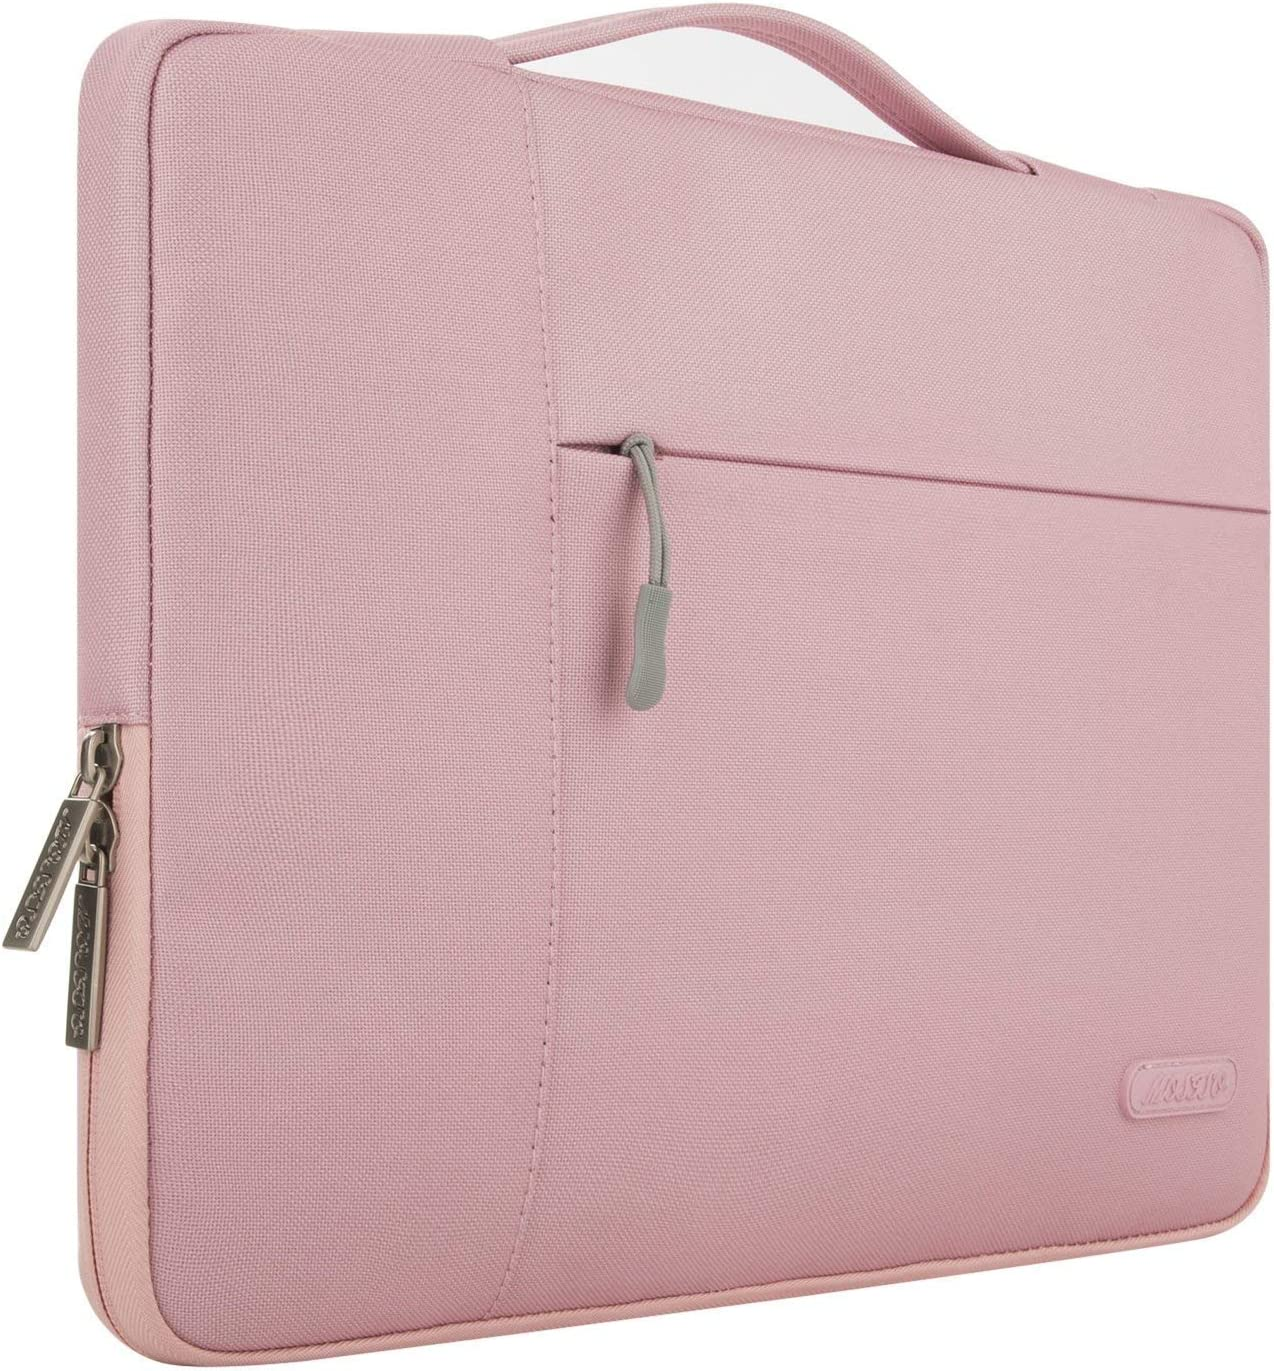 MOSISO Laptop Sleeve Compatible with 13-13.3 inch MacBook Air, MacBook Pro, Notebook Computer, Polyester Multifunctional Briefcase Carrying Bag, Pink